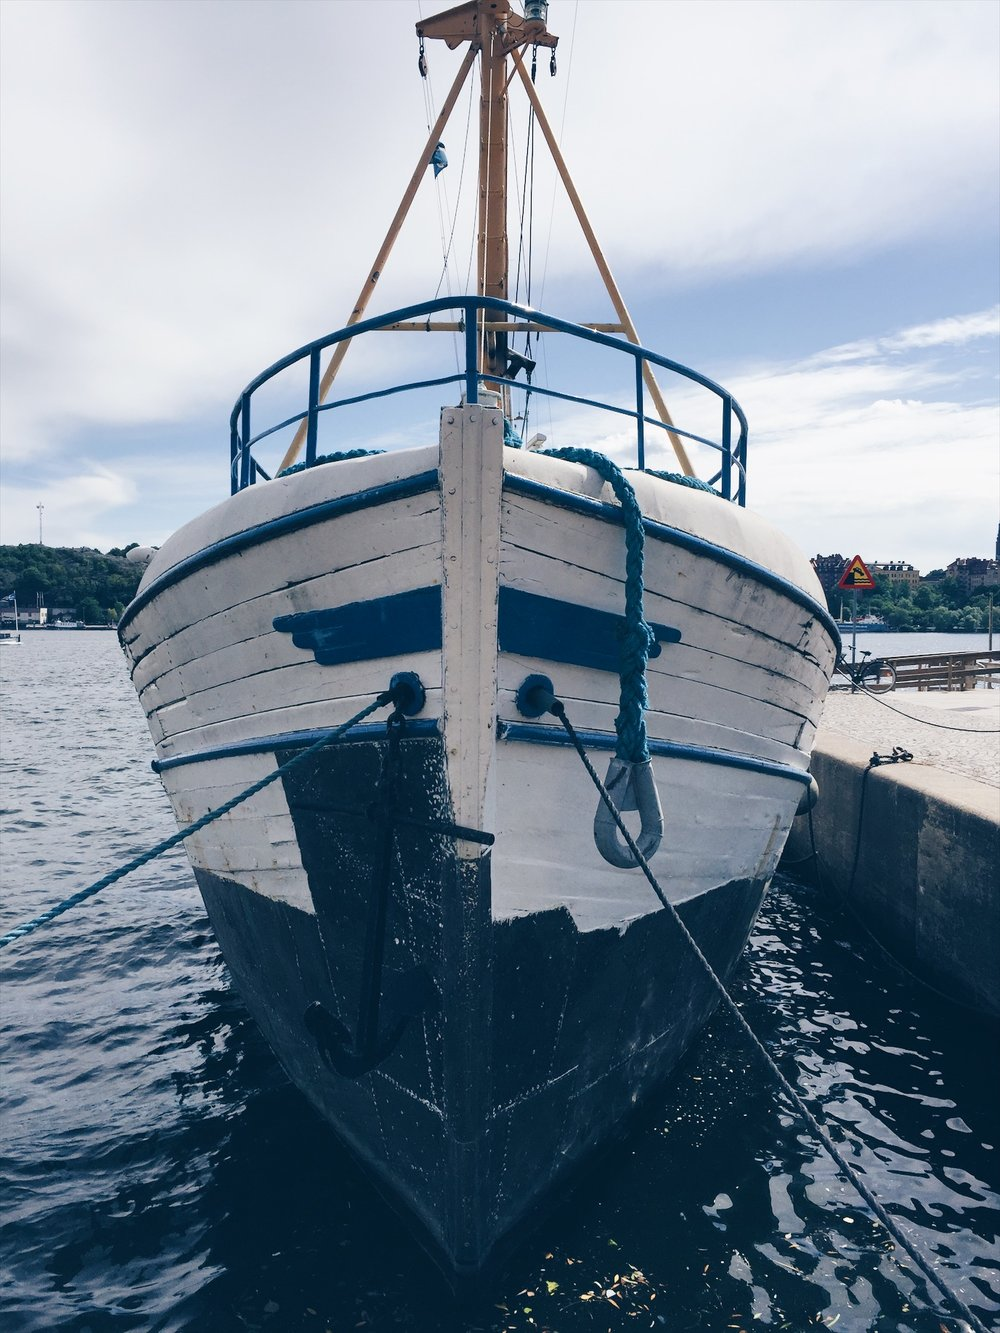 The most instagrammabel spots in Stockholm- a boat by Kungsholmen